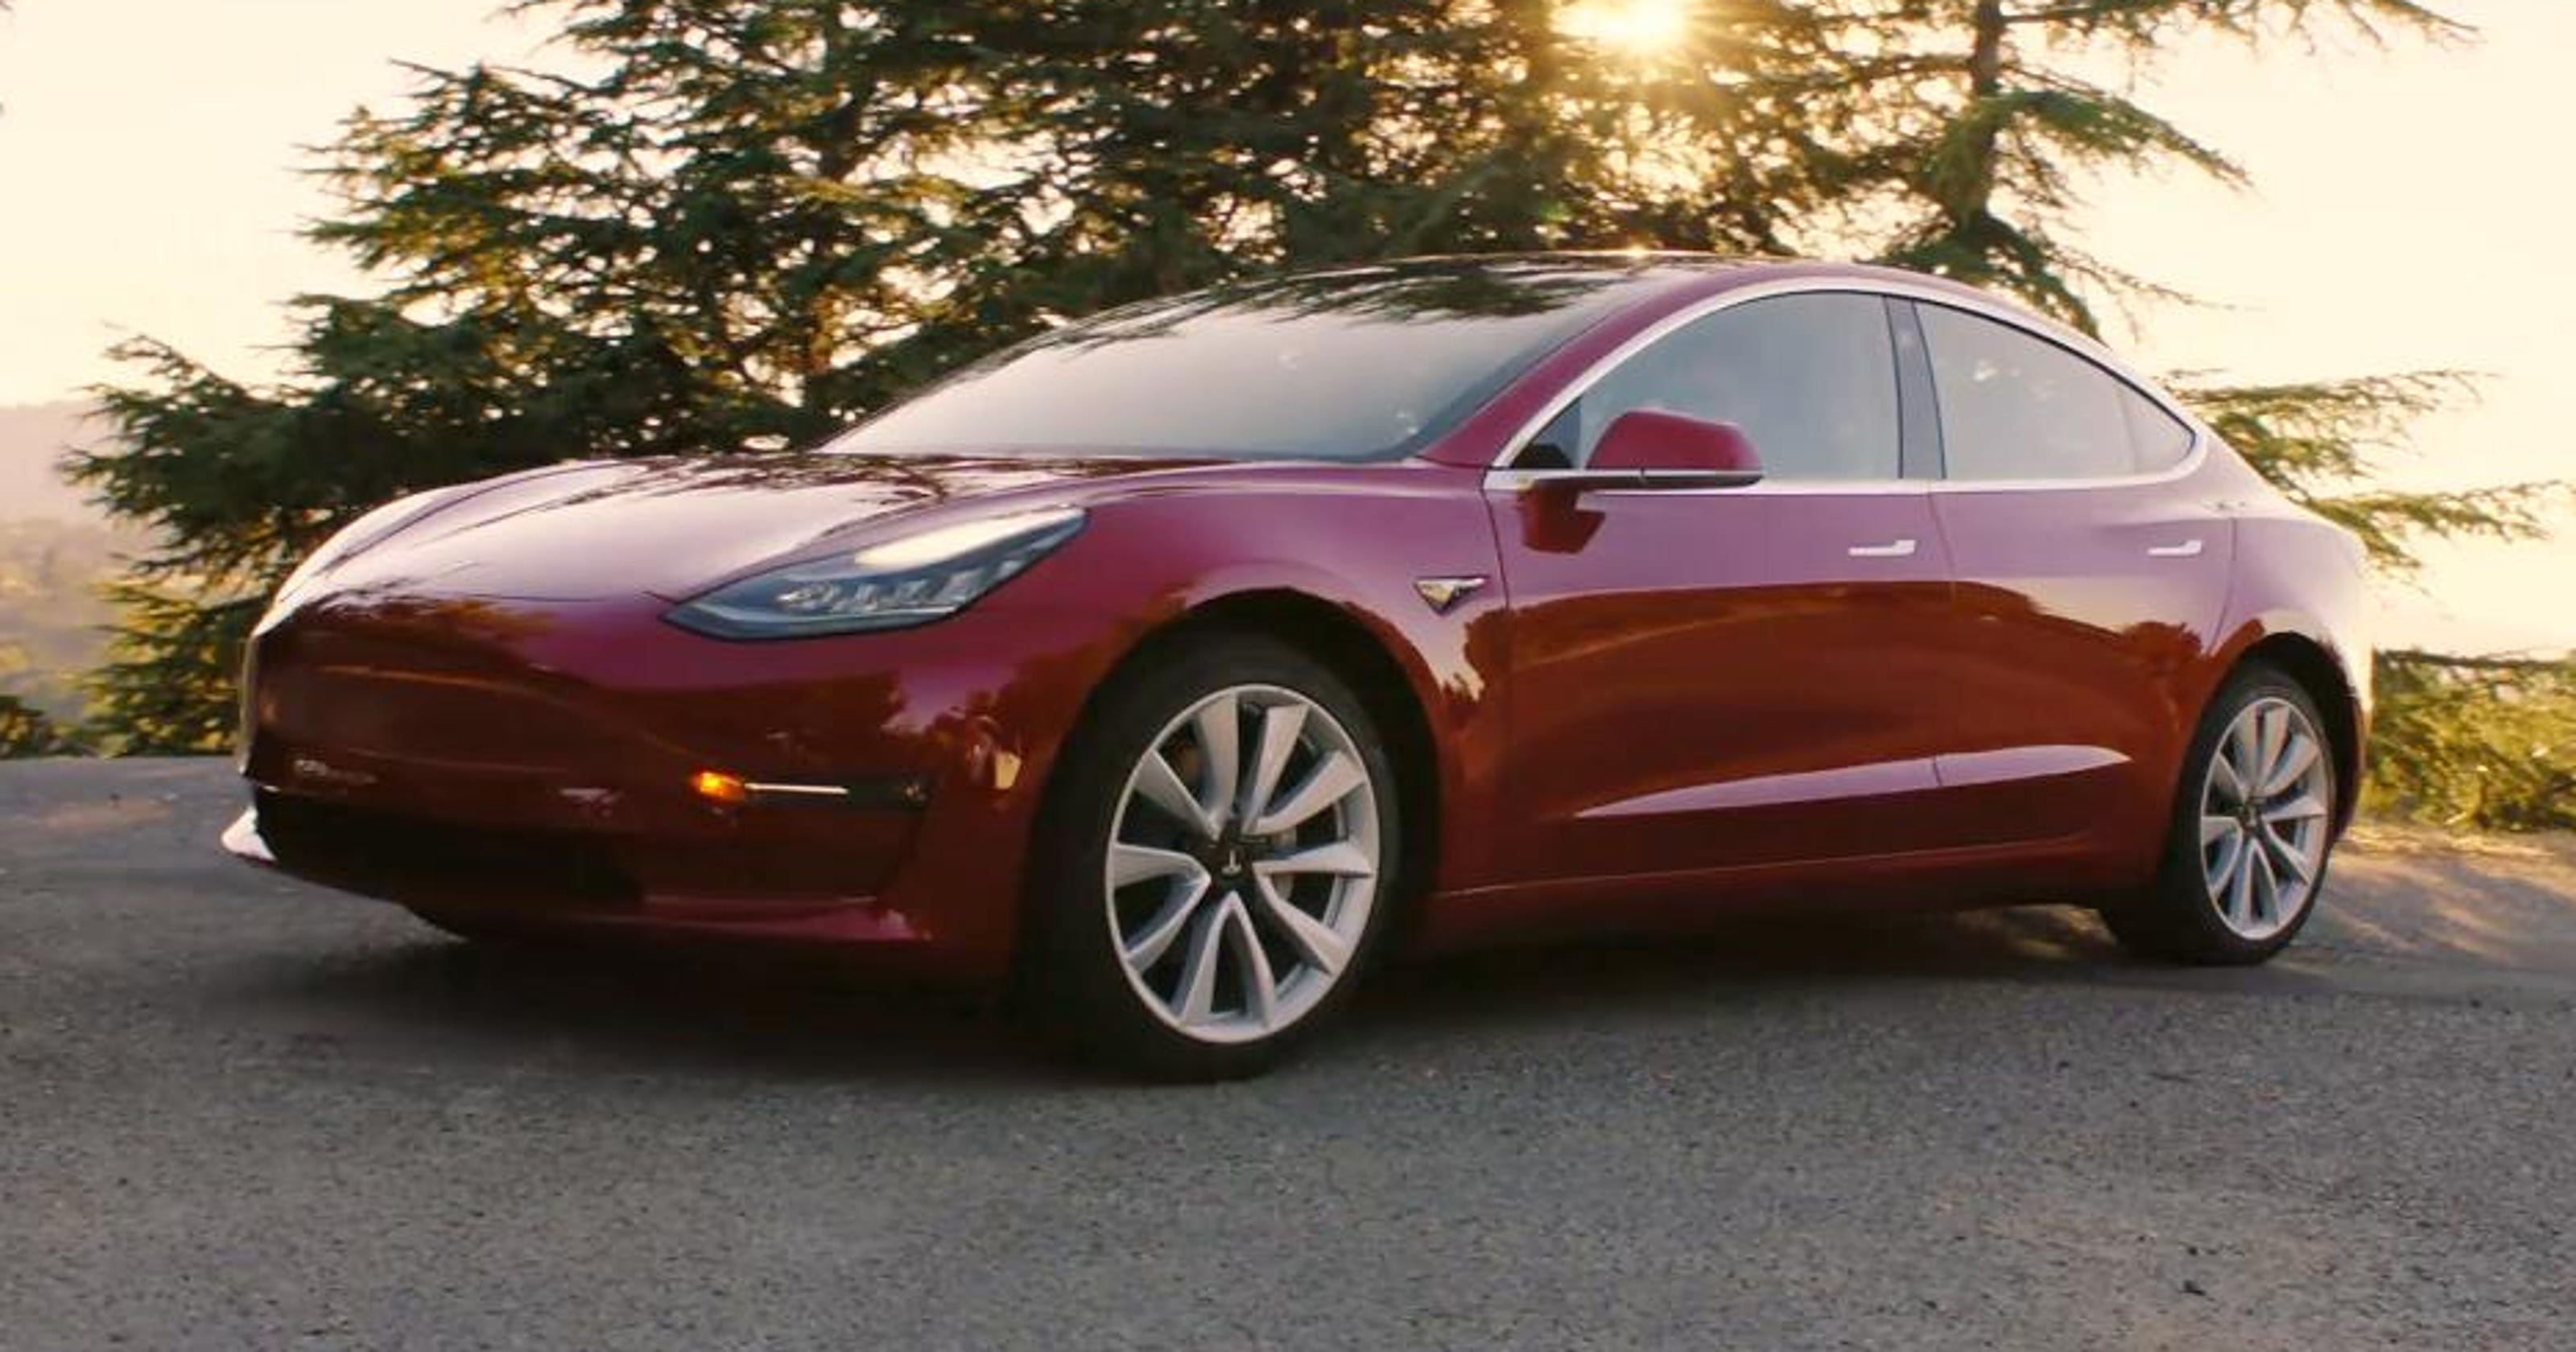 Henry Payne: Still waiting for my Tesla Model 3 after more